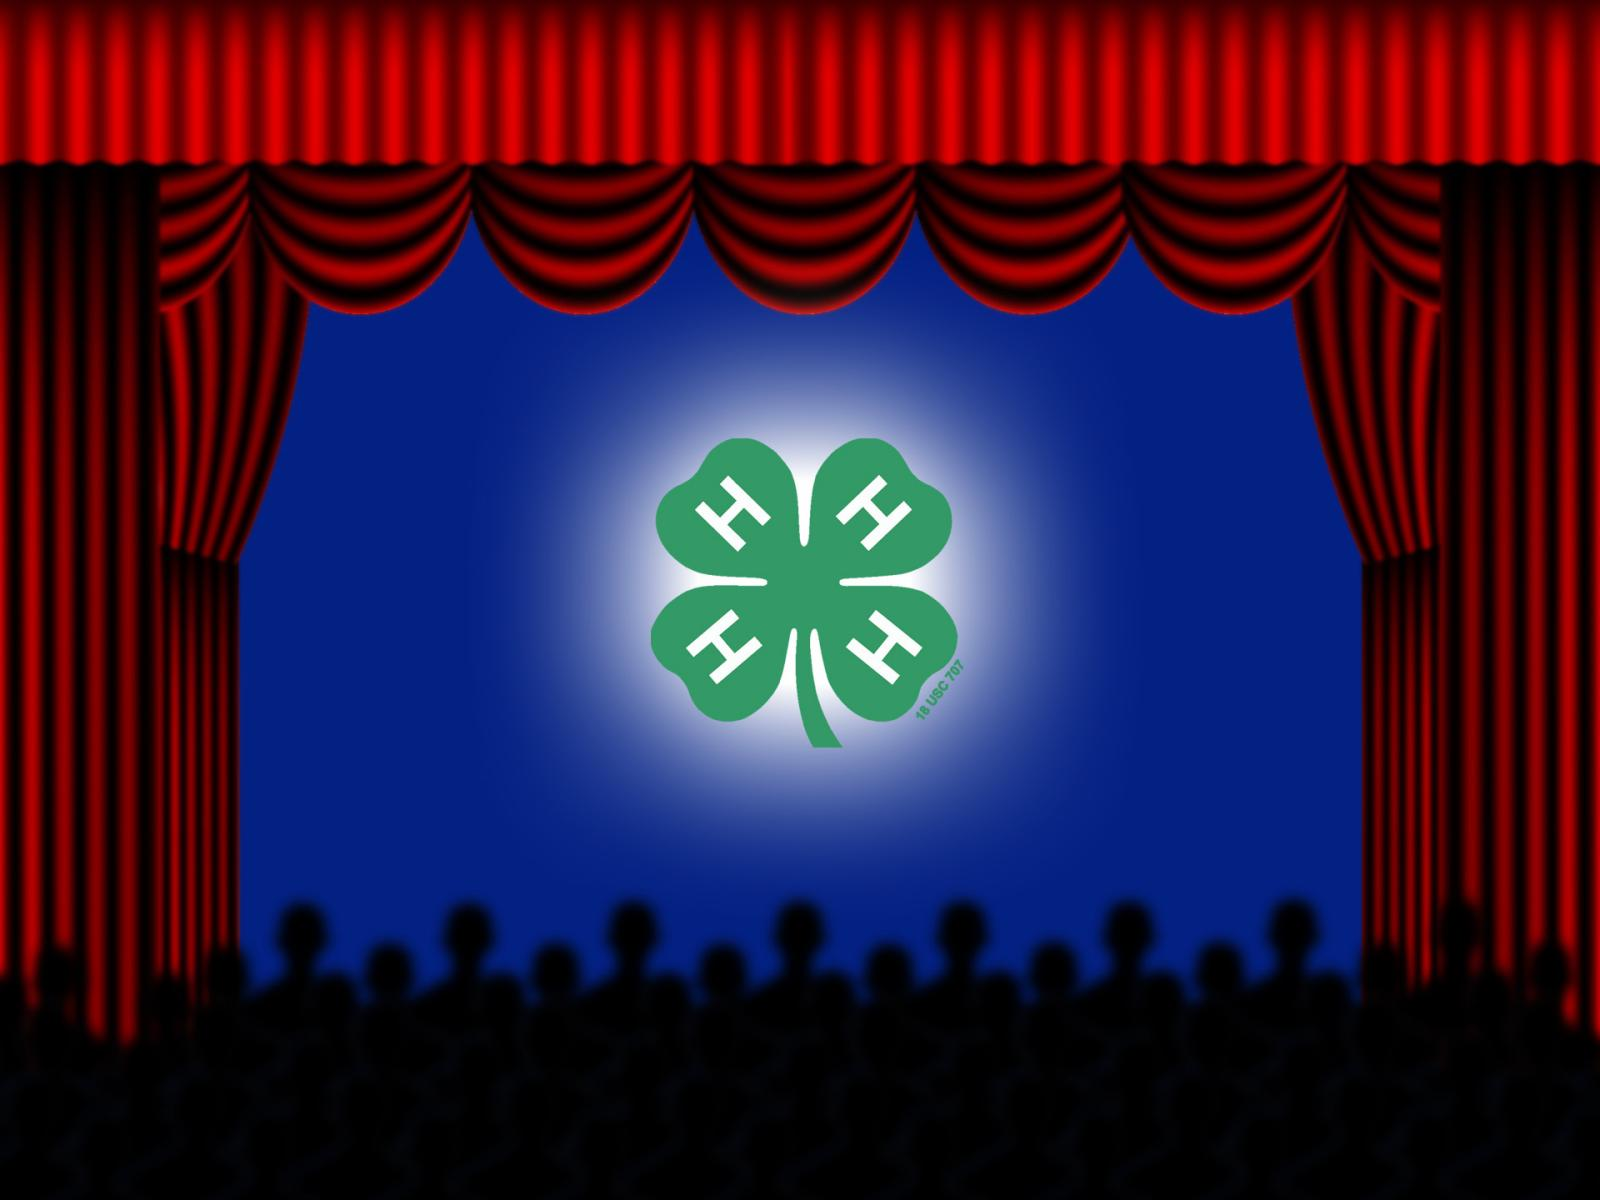 Stage with red curtains and 4-H emblem